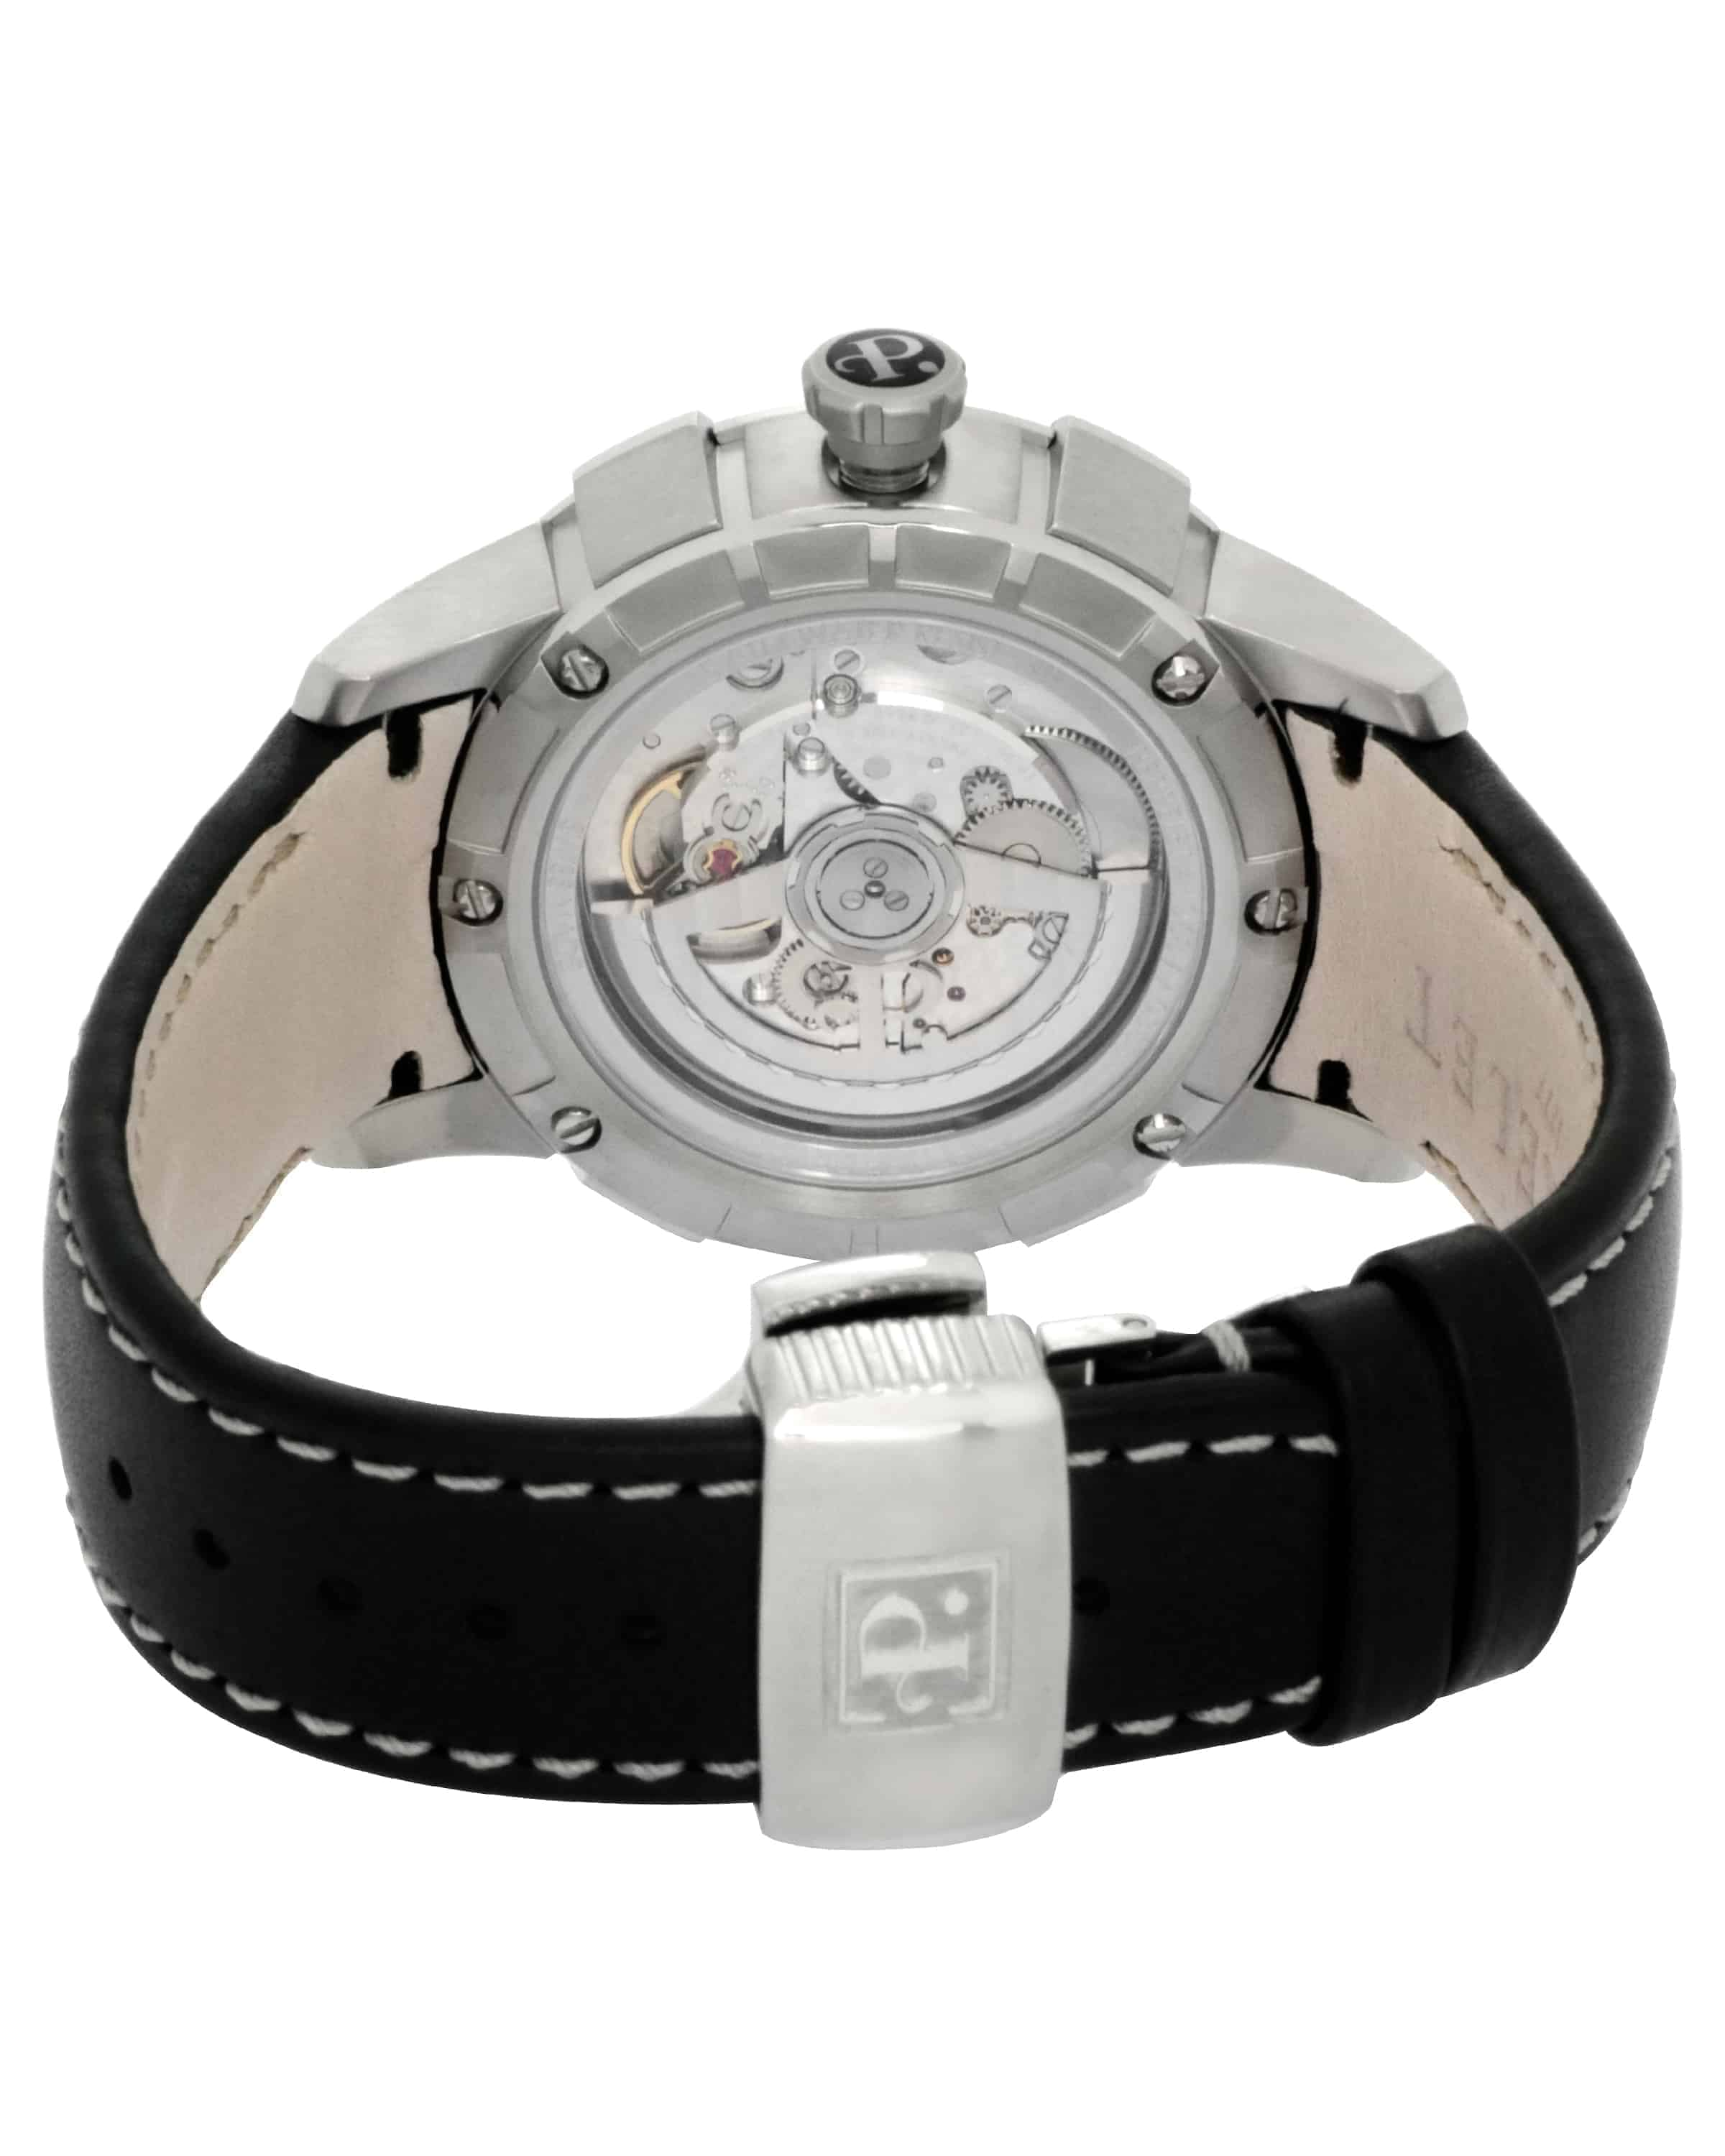 Perrelet Class-T Stainless Steel Automatic Men's Watch A1068/2